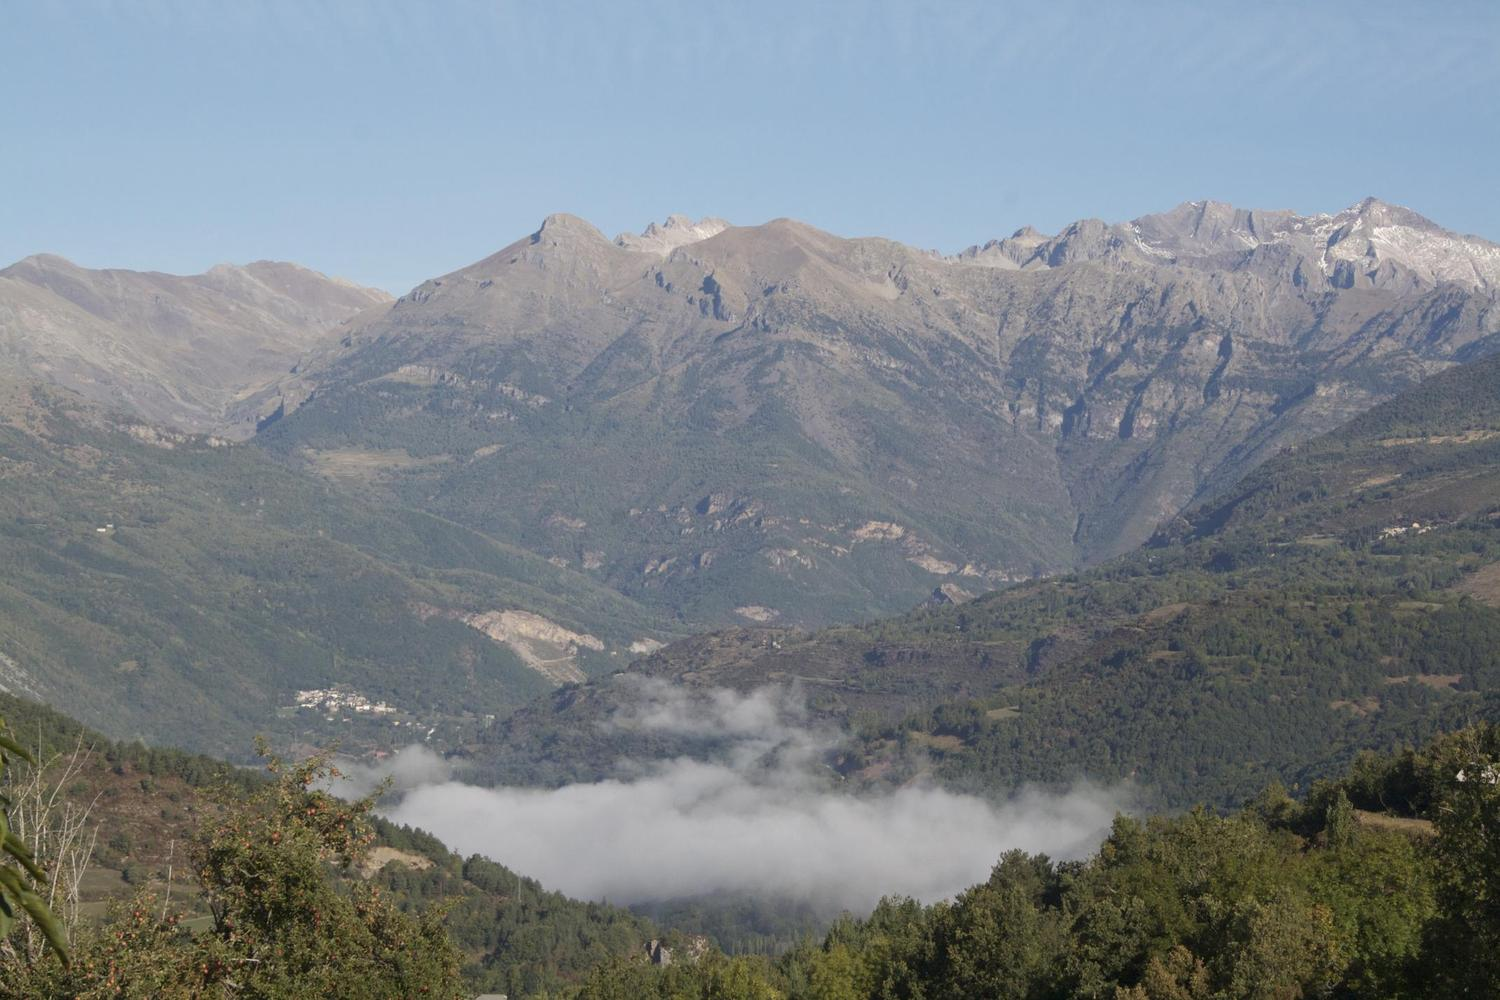 Misty morning looking out from the village of Ainsa